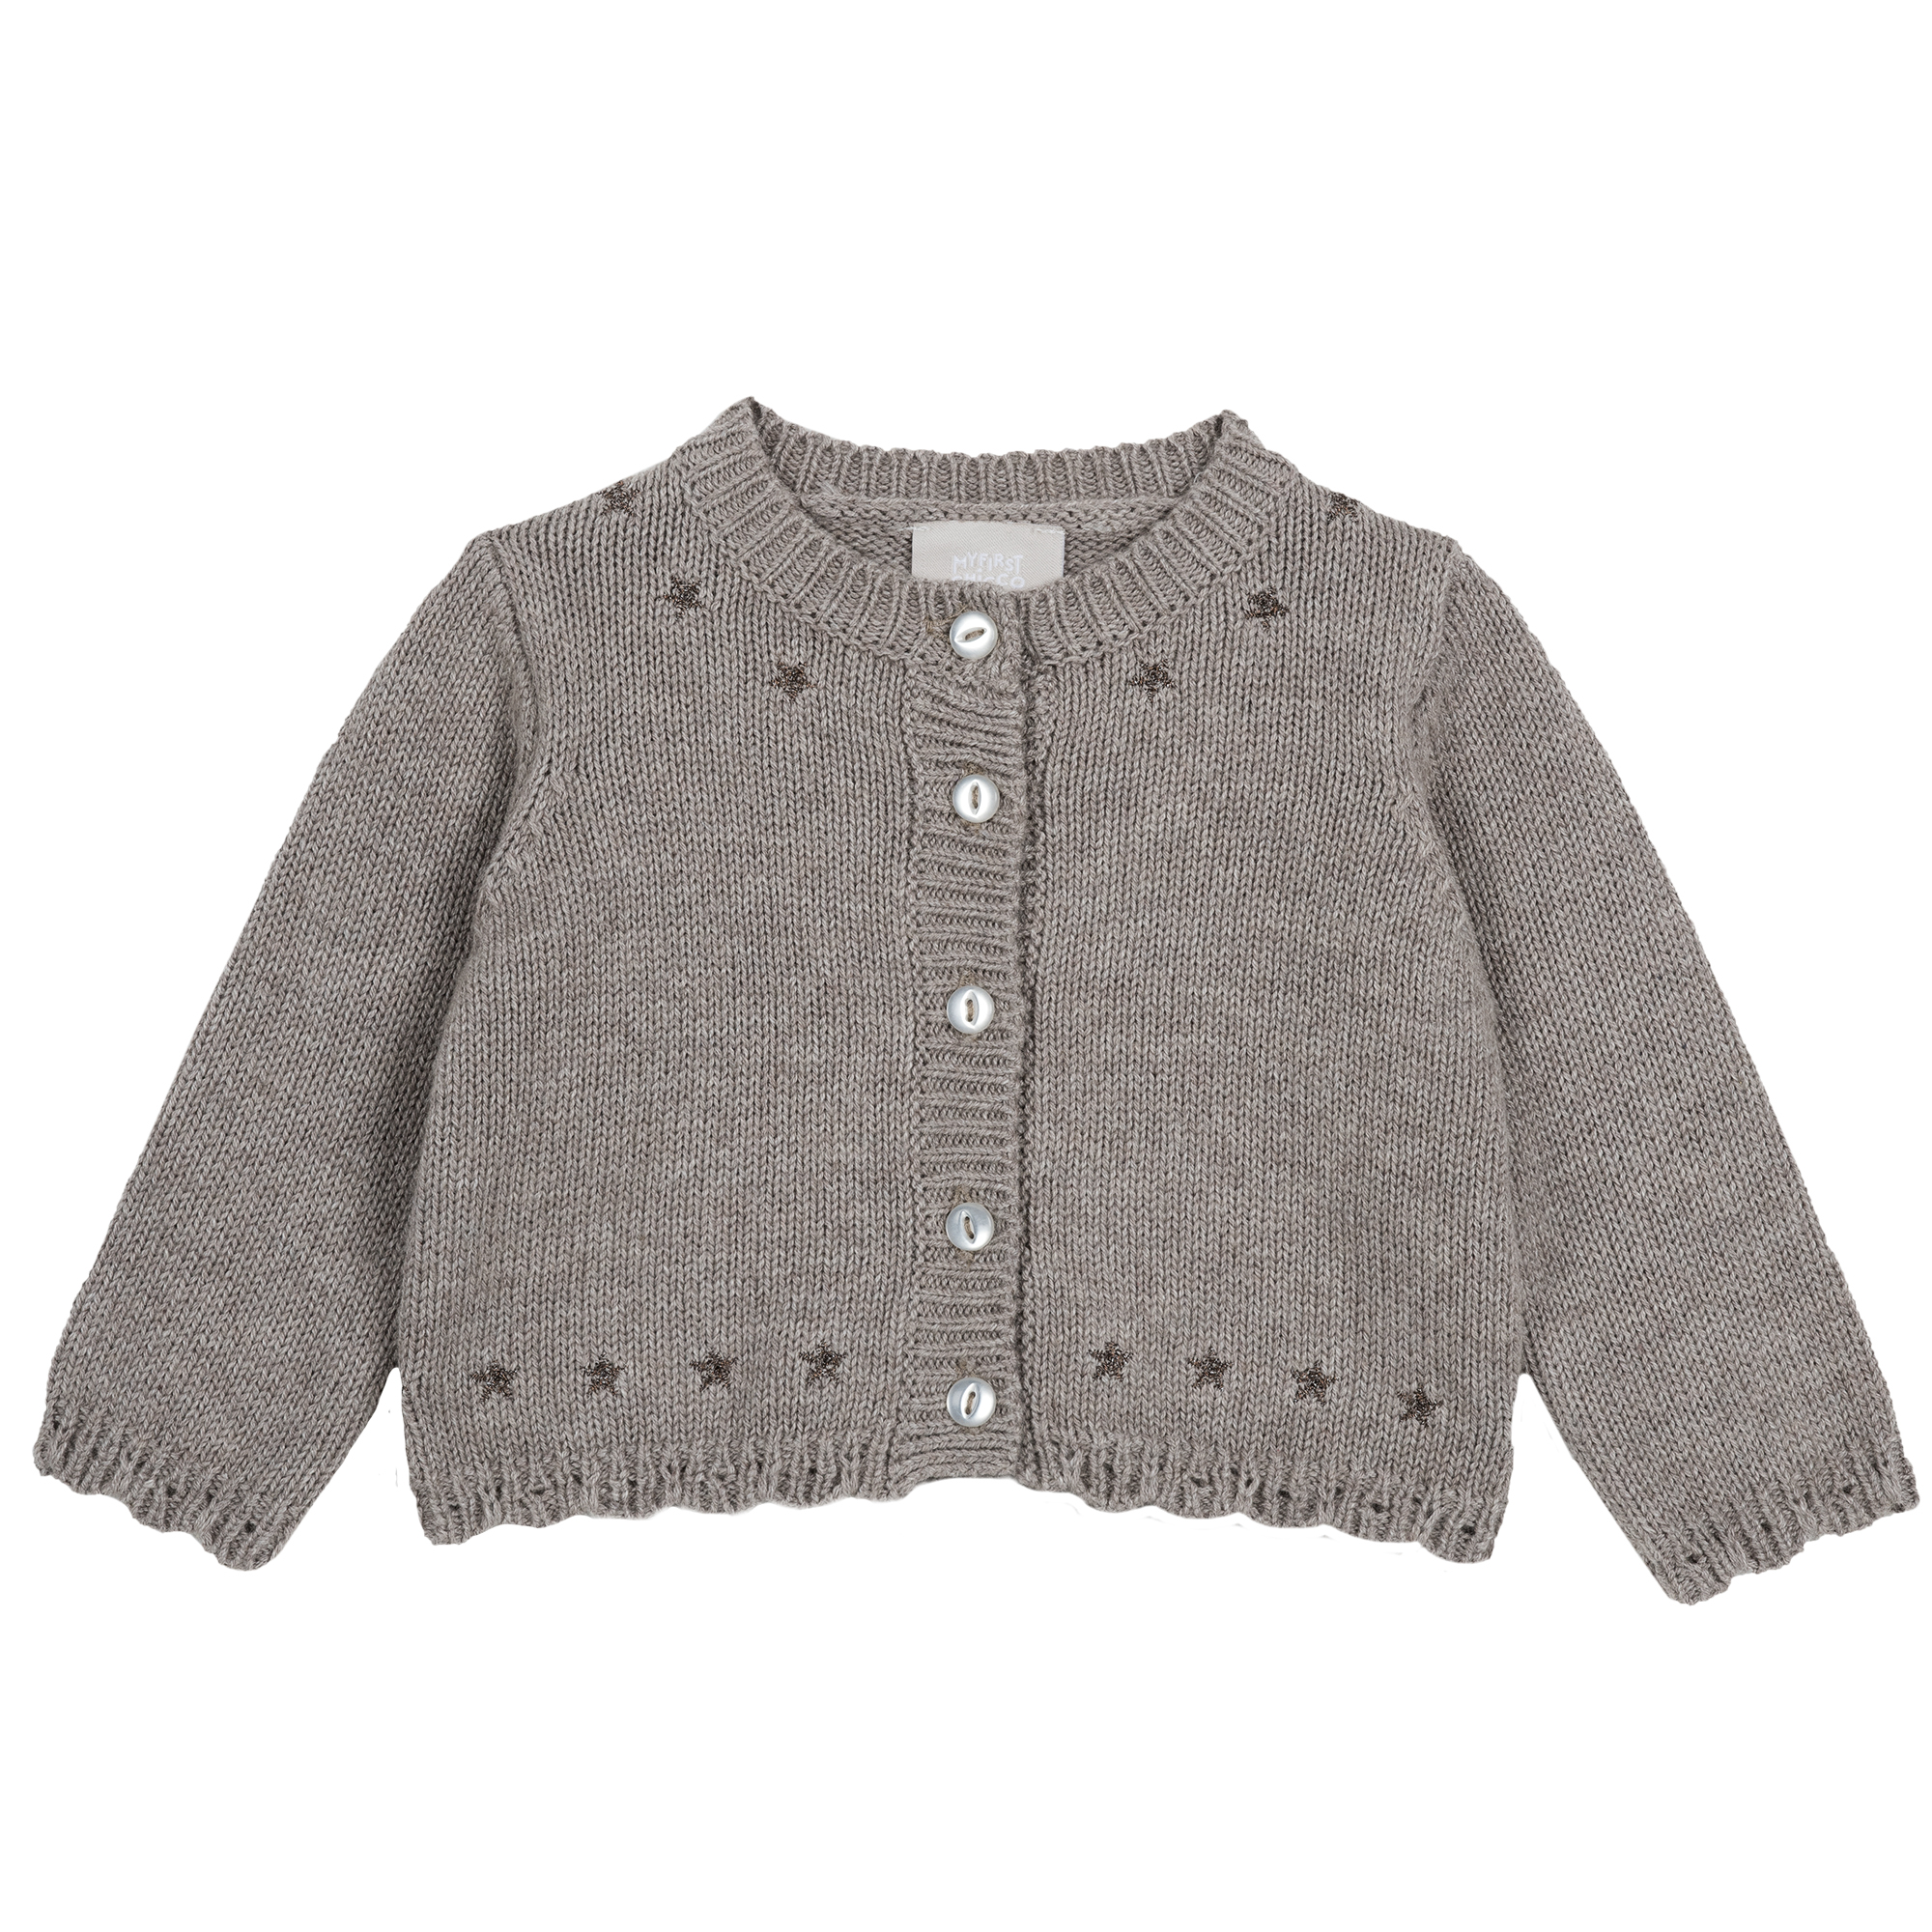 Chicco Cardigan copii Chicco maro 62